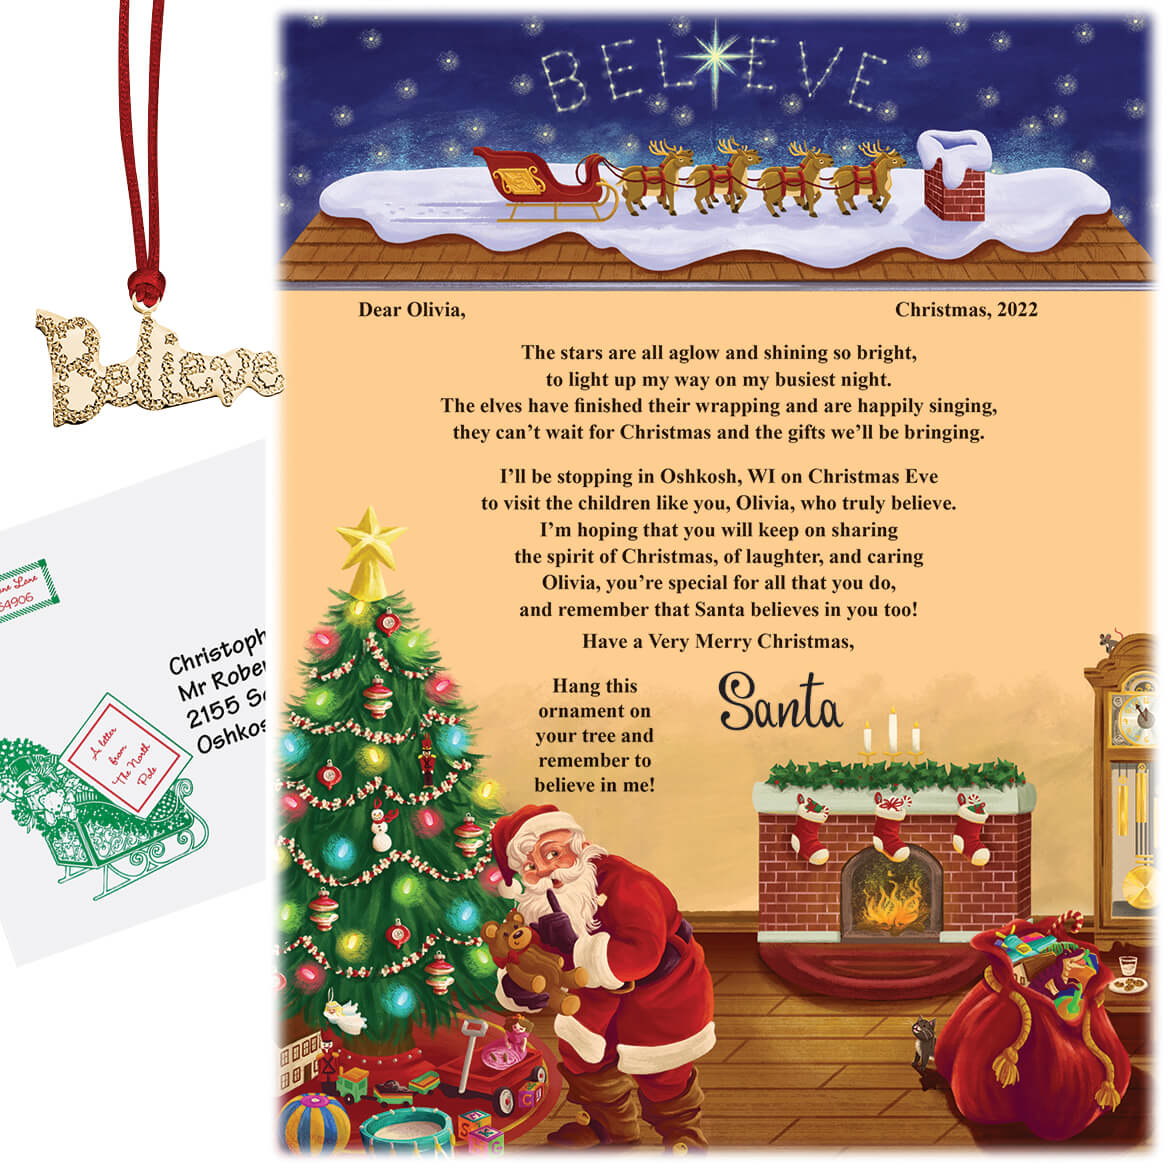 Letter From Santa To Child - Santa Letters To Children - Miles Kimball